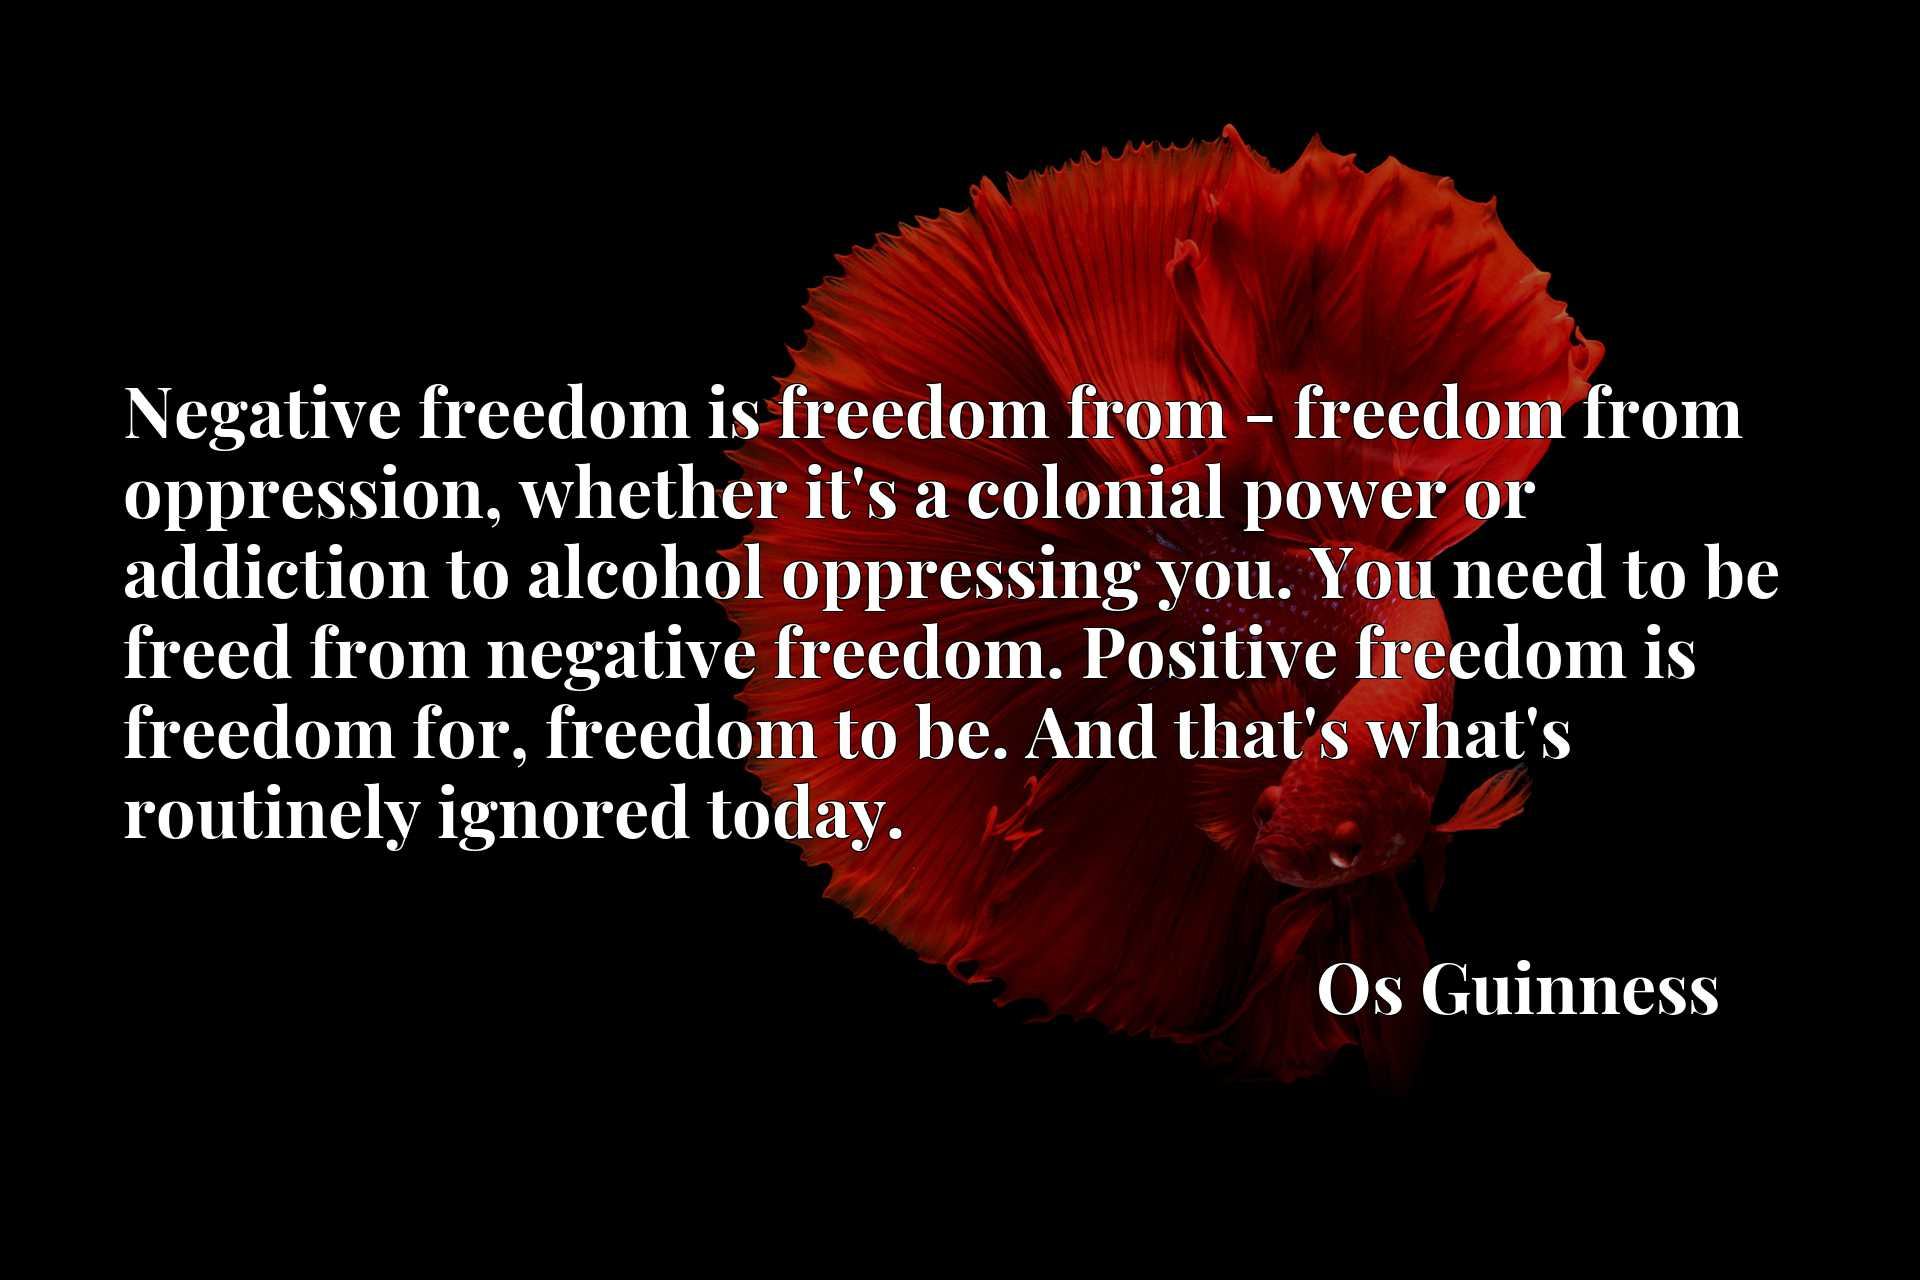 Negative freedom is freedom from - freedom from oppression, whether it's a colonial power or addiction to alcohol oppressing you. You need to be freed from negative freedom. Positive freedom is freedom for, freedom to be. And that's what's routinely ignored today.